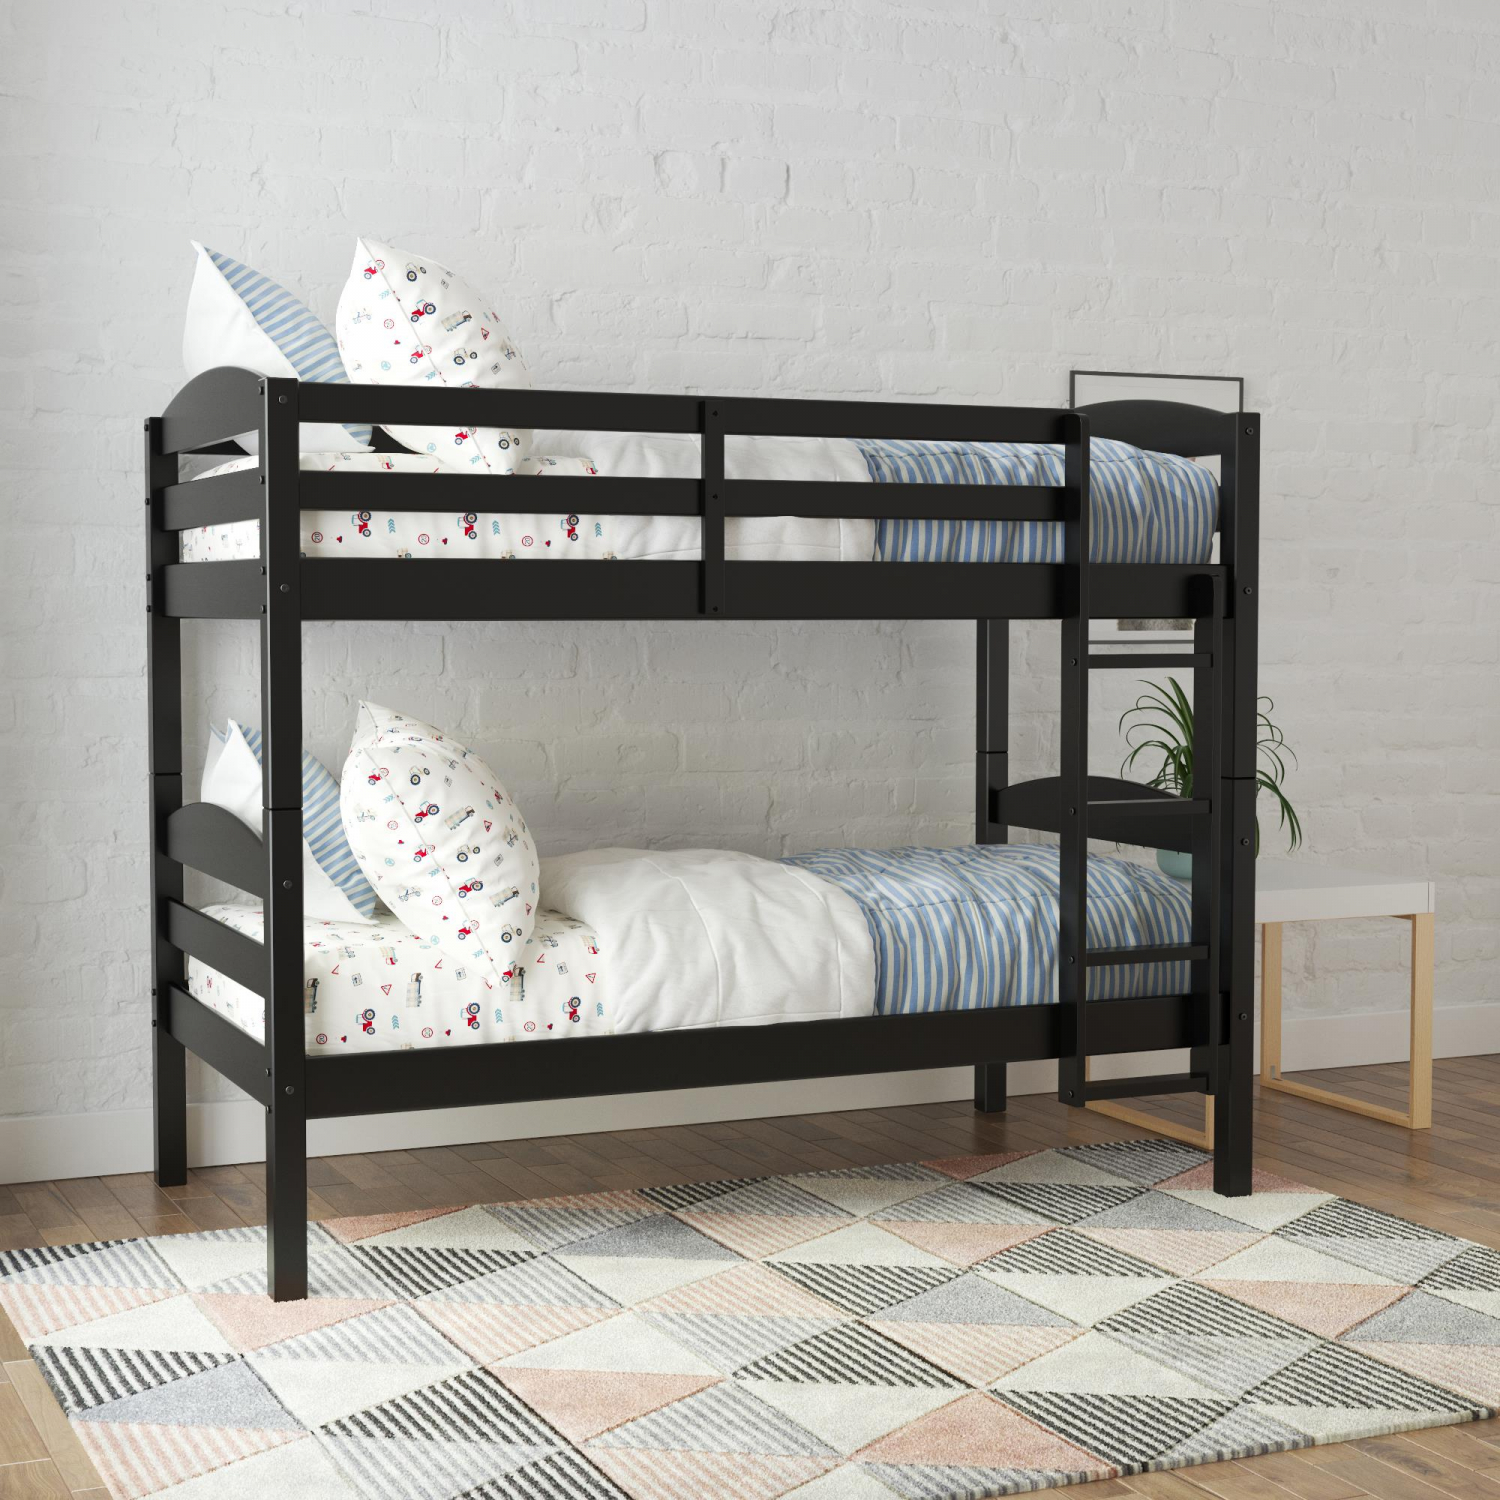 Picture of: Twin Over Twin Wooden Convertible Bunk Bed With Ladder Rails For Kids Black 7445053894825 Ebay